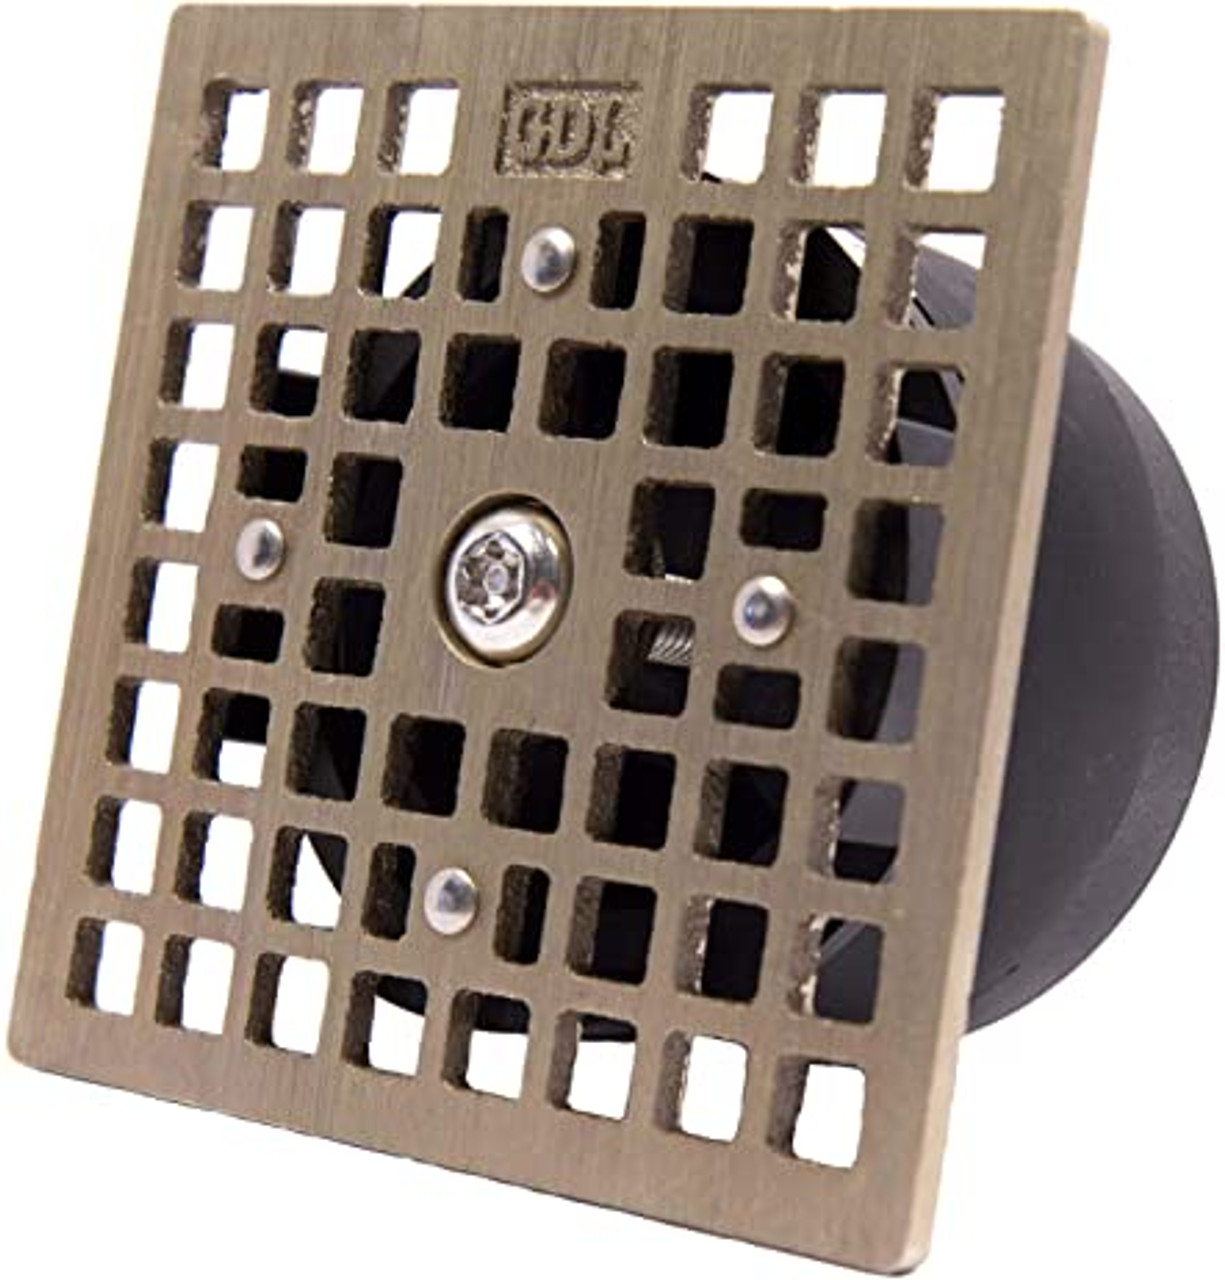 LockOut - Locking Floor Drain Replacement Grate With Odor and Bug Blocking Valve | Blocks Sewer Gas Odors, Bugs, and Locks With A Single Bolt - Square Josam 4.65""""